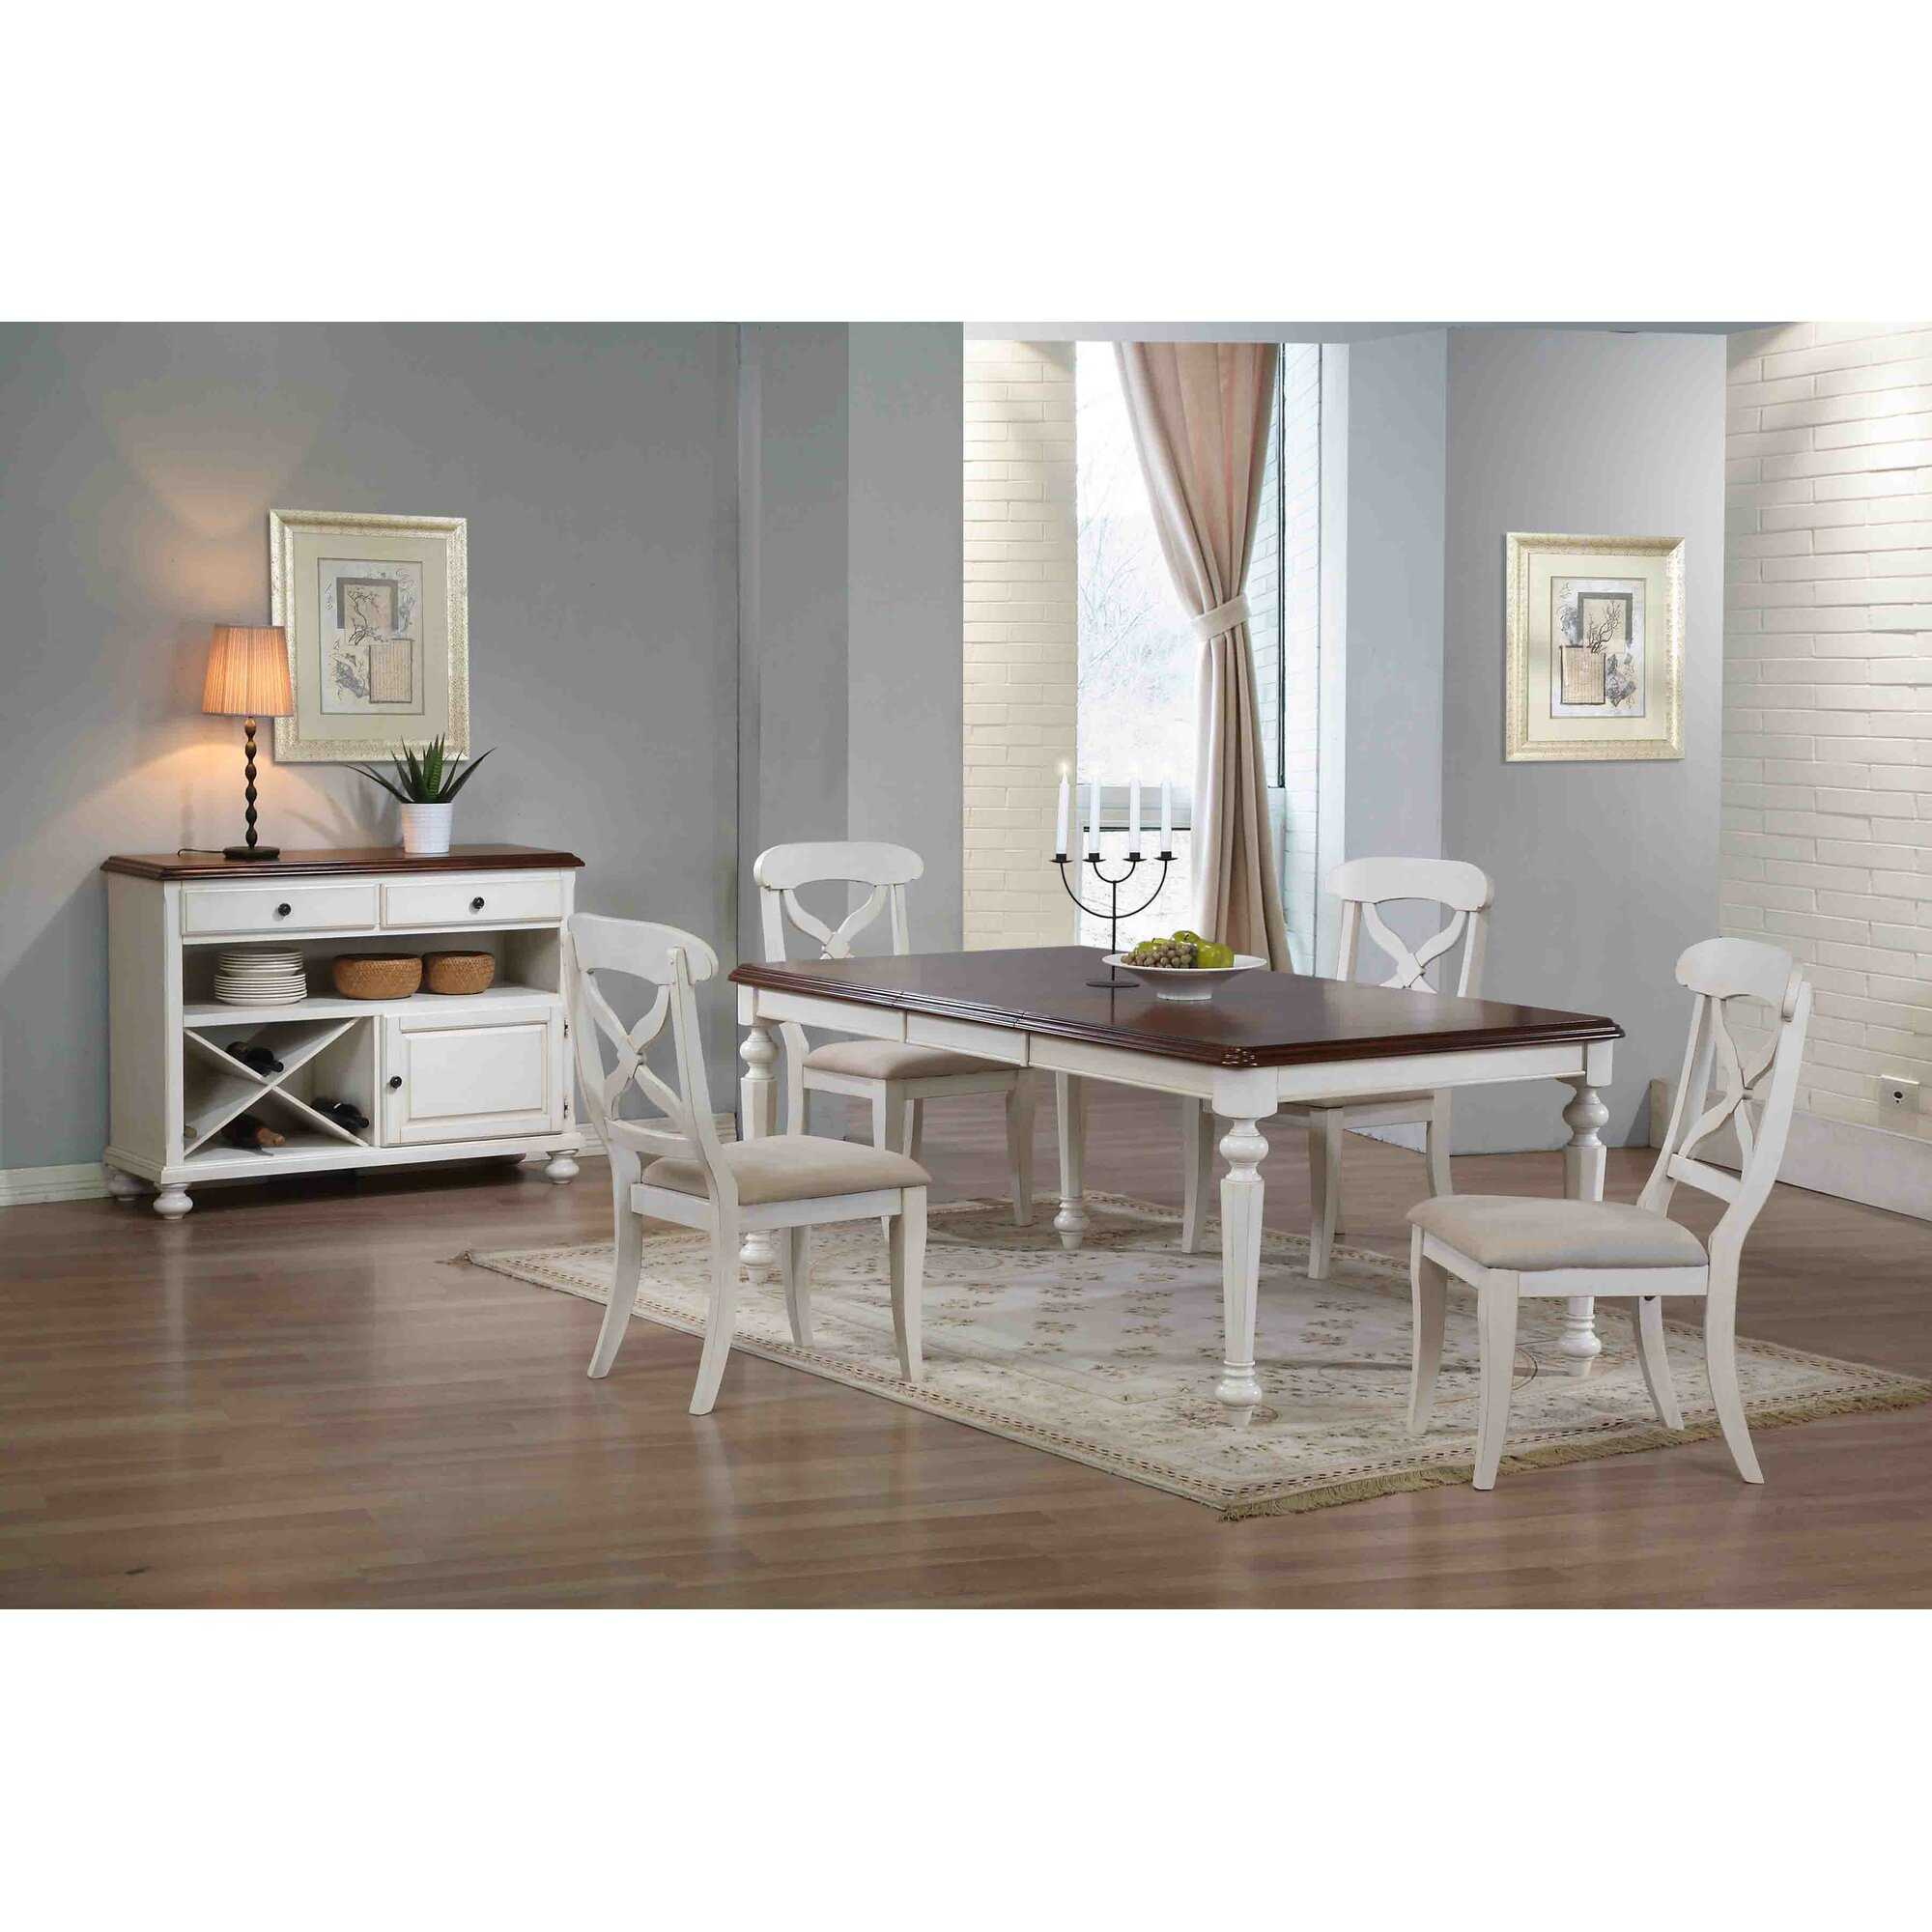 Butterfly kitchen table and chairs - Lockwood Butterfly Leaf 6 Piece Dining Set